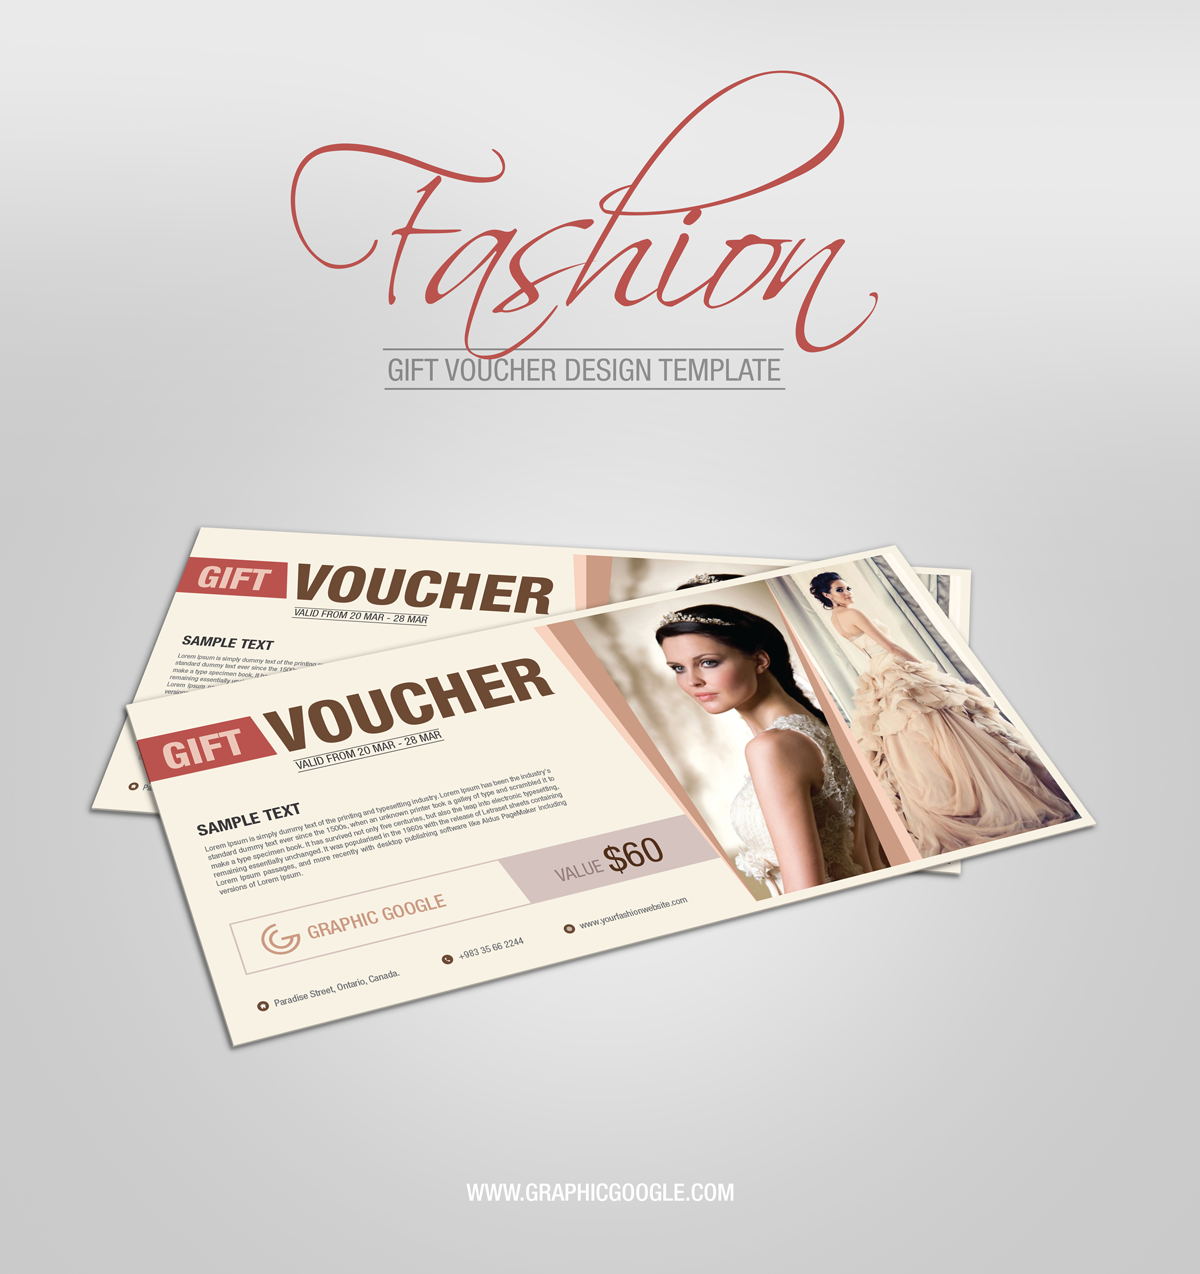 Graphic Google  Free Voucher Design Template